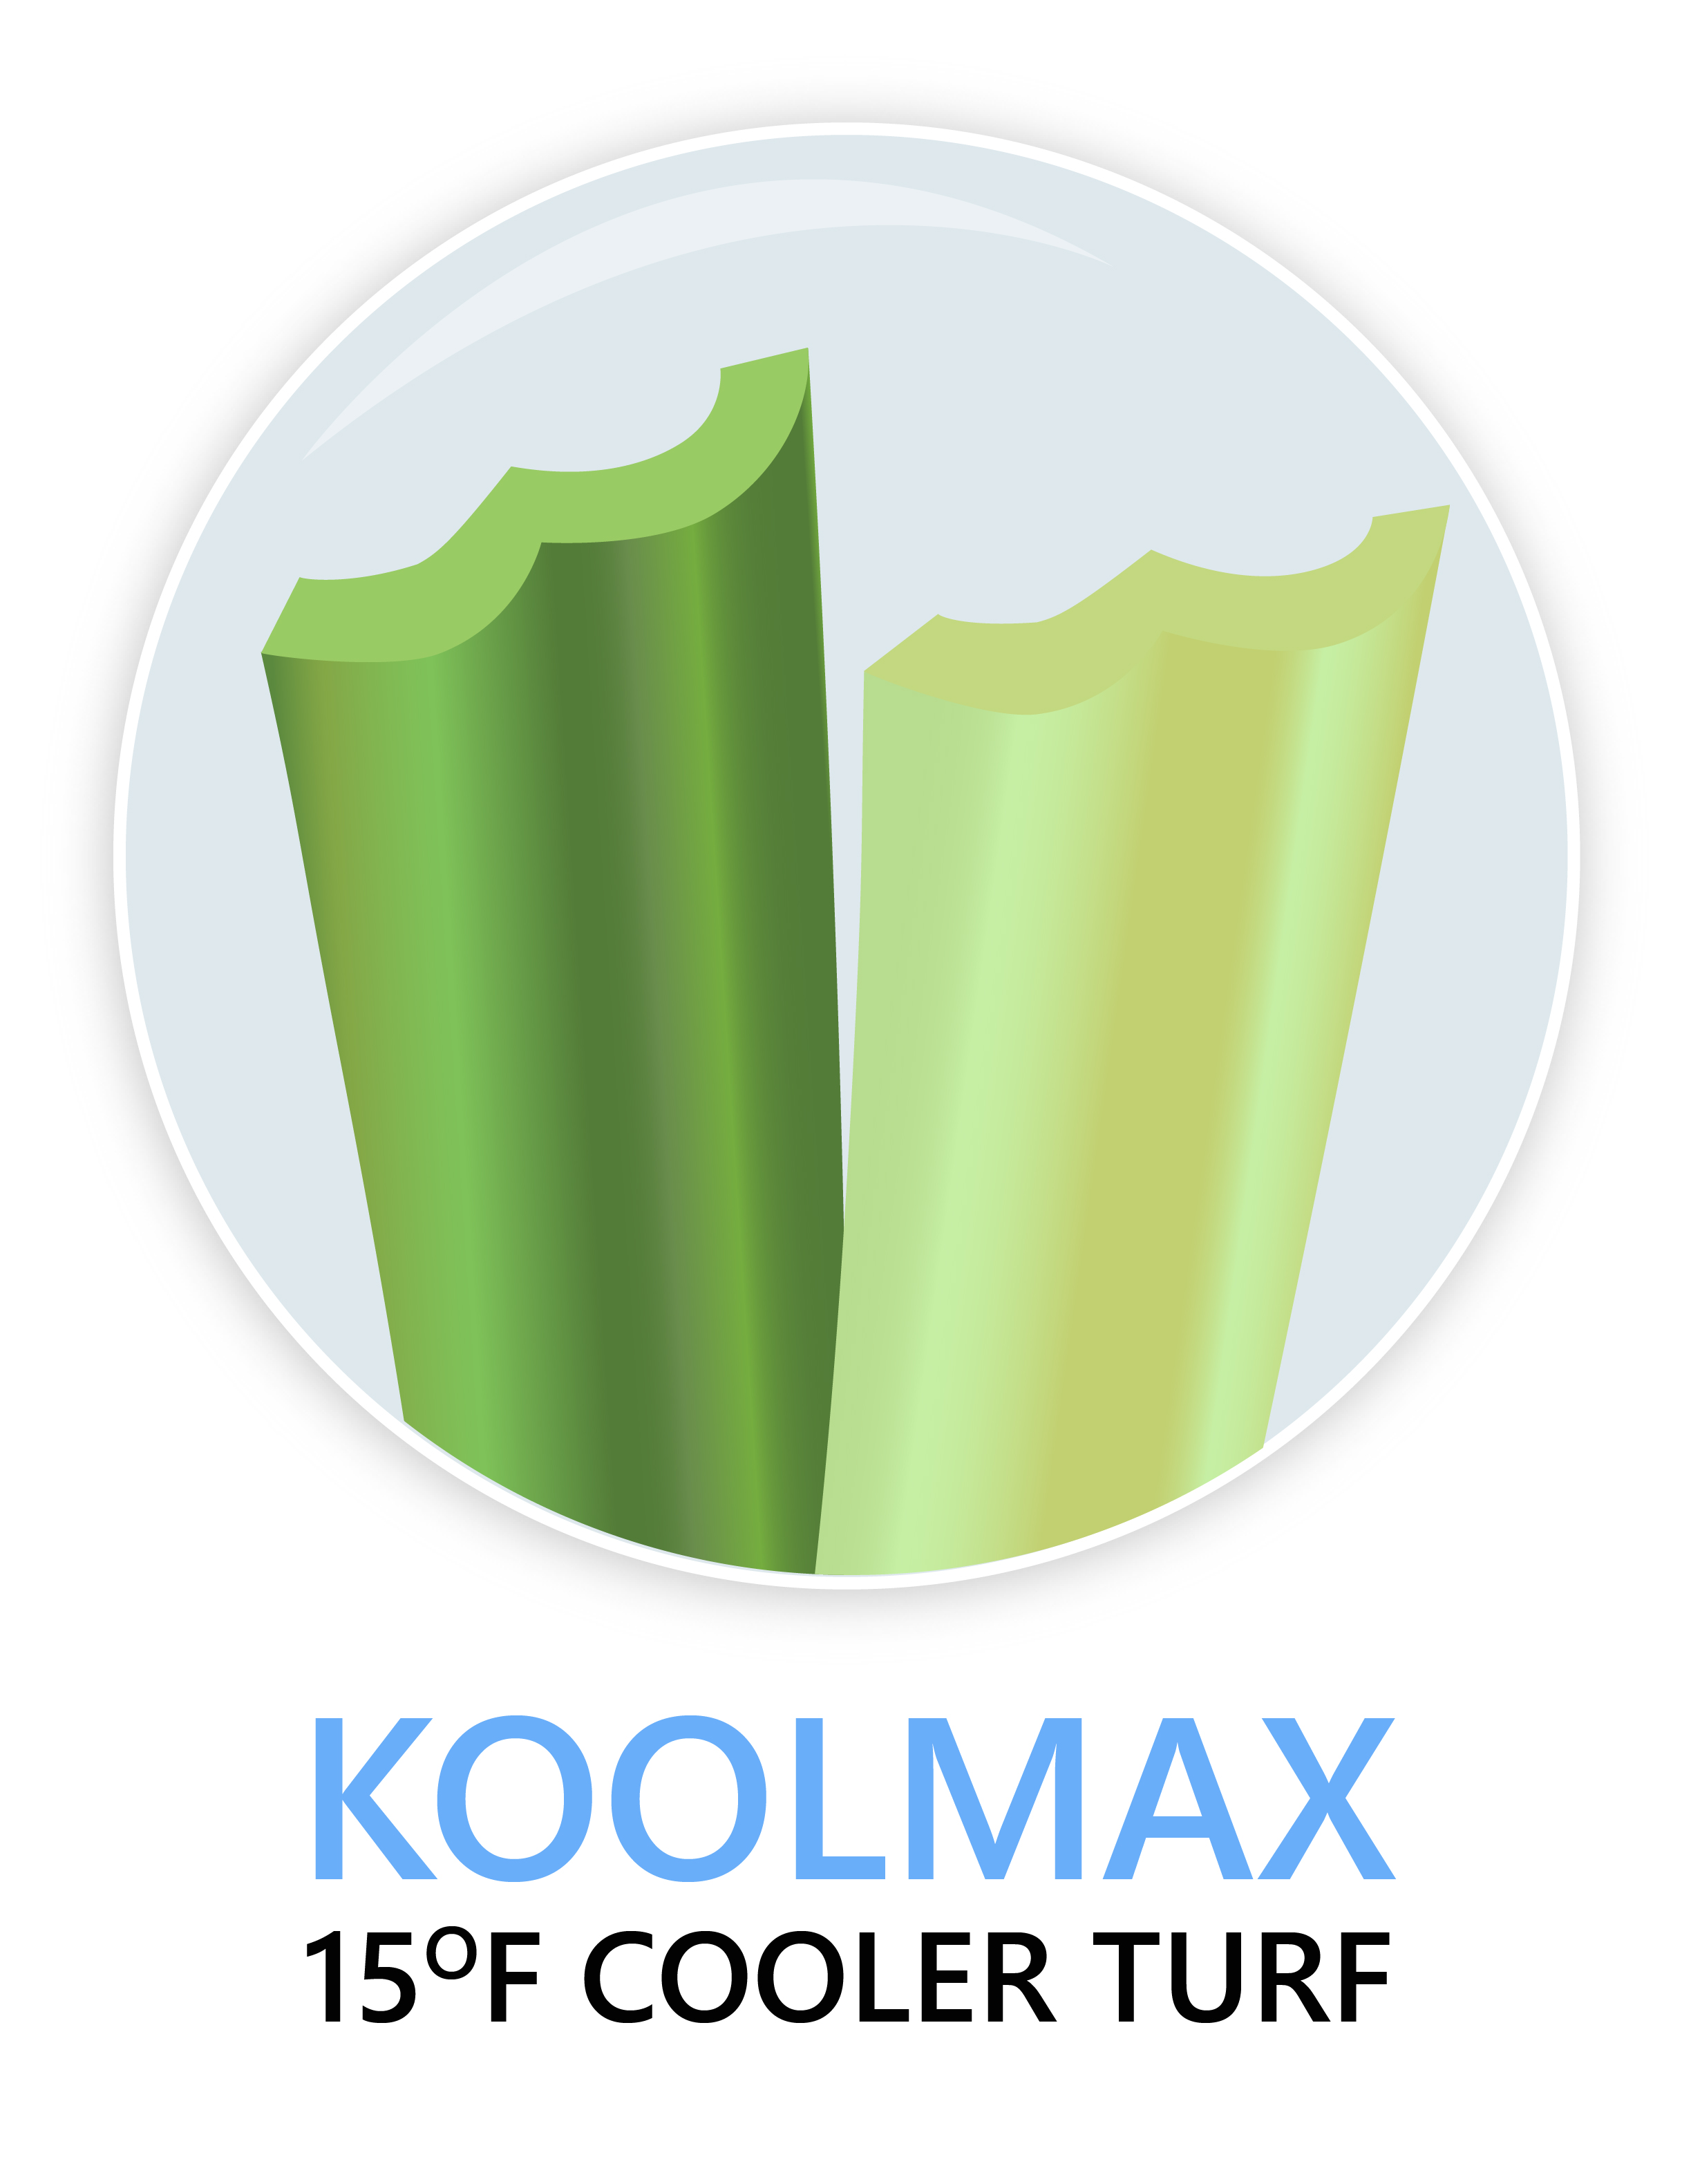 KoolMax synthetic turf cooling technology keeps surface at 15 degrees lower temperature.